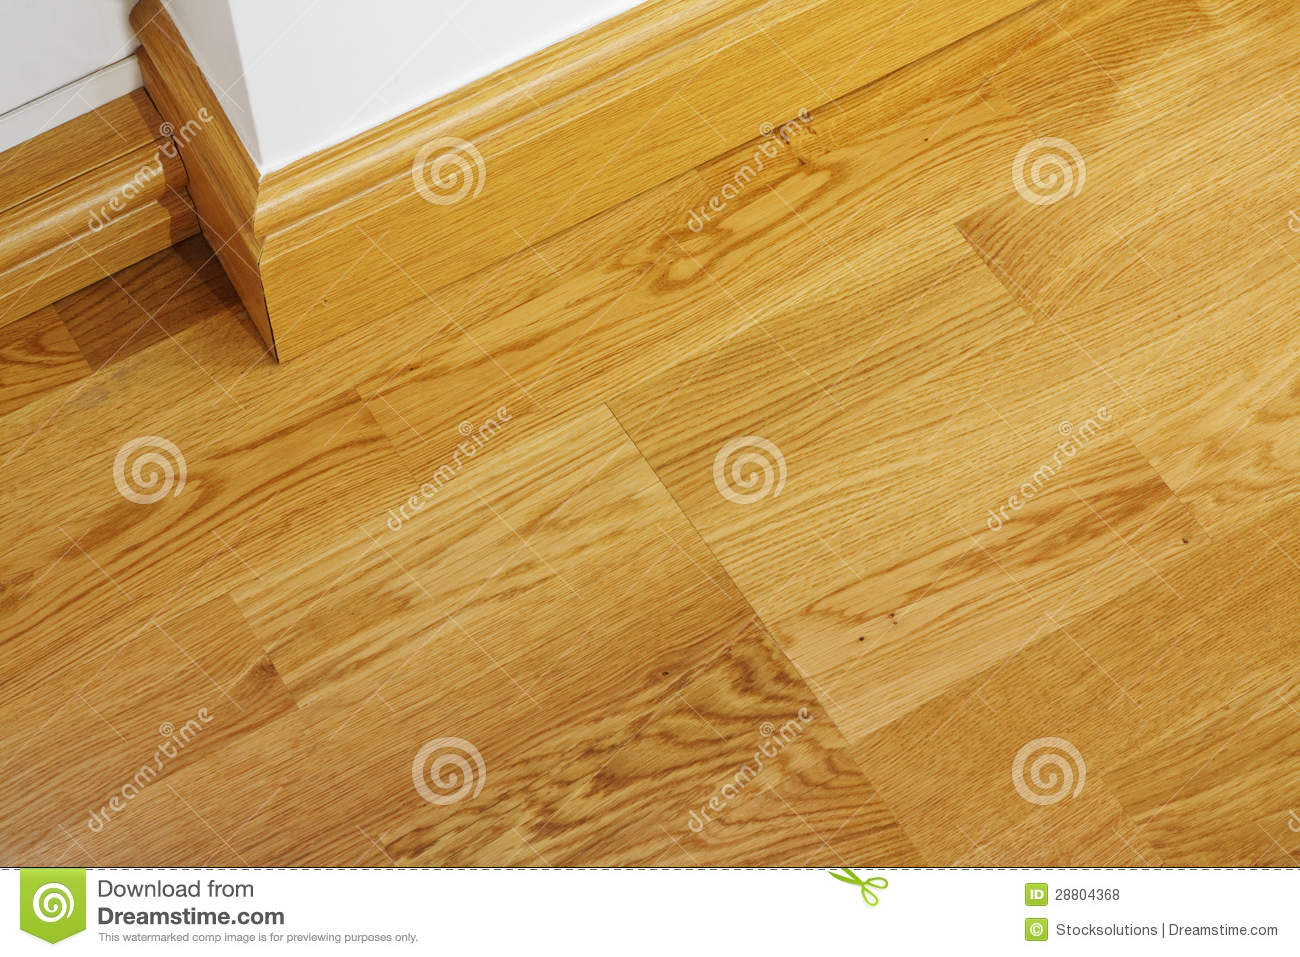 Laminate Wooden Flooring And Skirting Boards Stock Photo